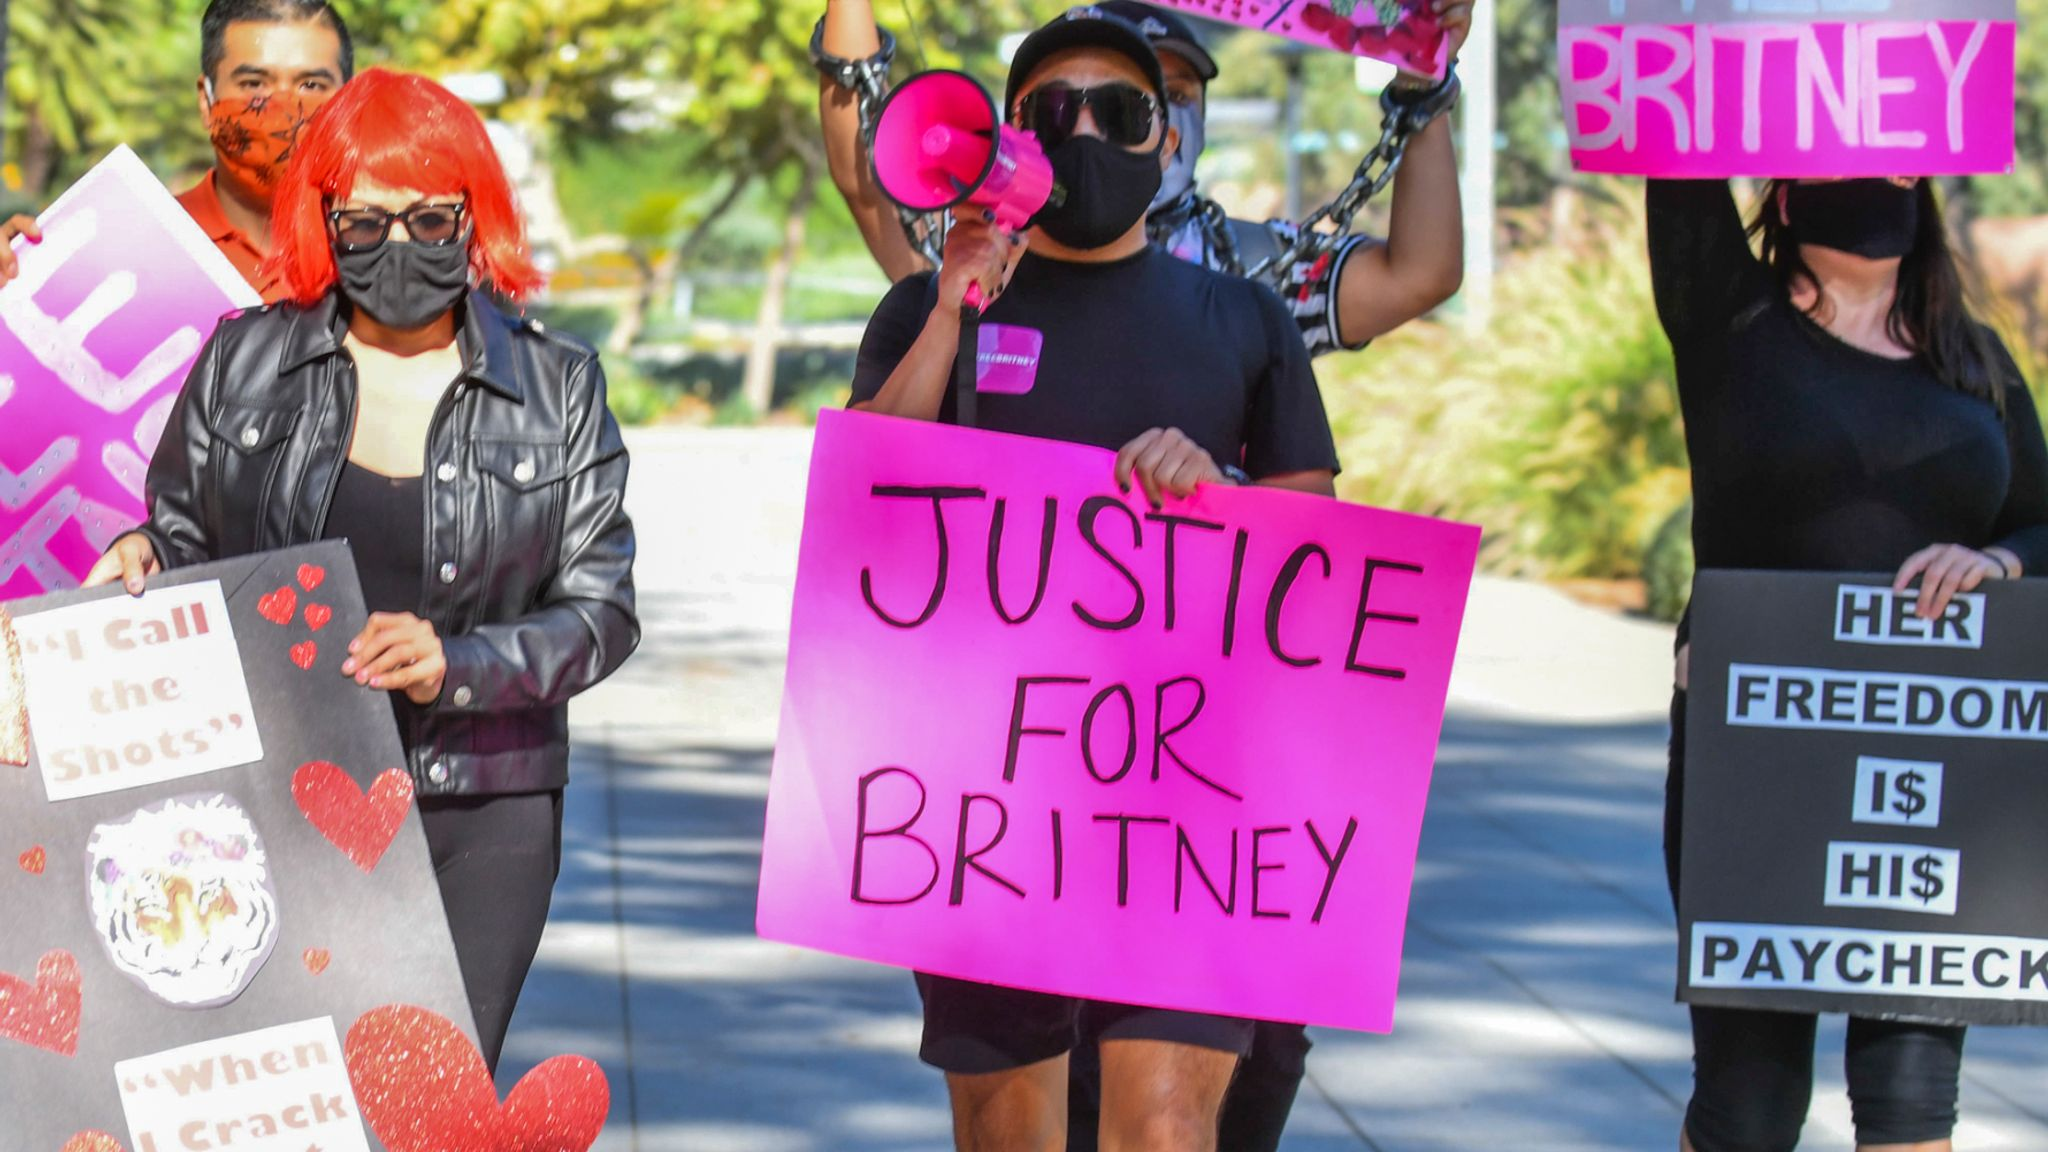 LOS ANGELES, CALIFORNIA - OCTOBER 14: Protesters march at the #FreeBritney protest outside of the courthouse on October 14, 2020 in Los Angeles, California. (Photo by Rodin Eckenroth/Getty Images)